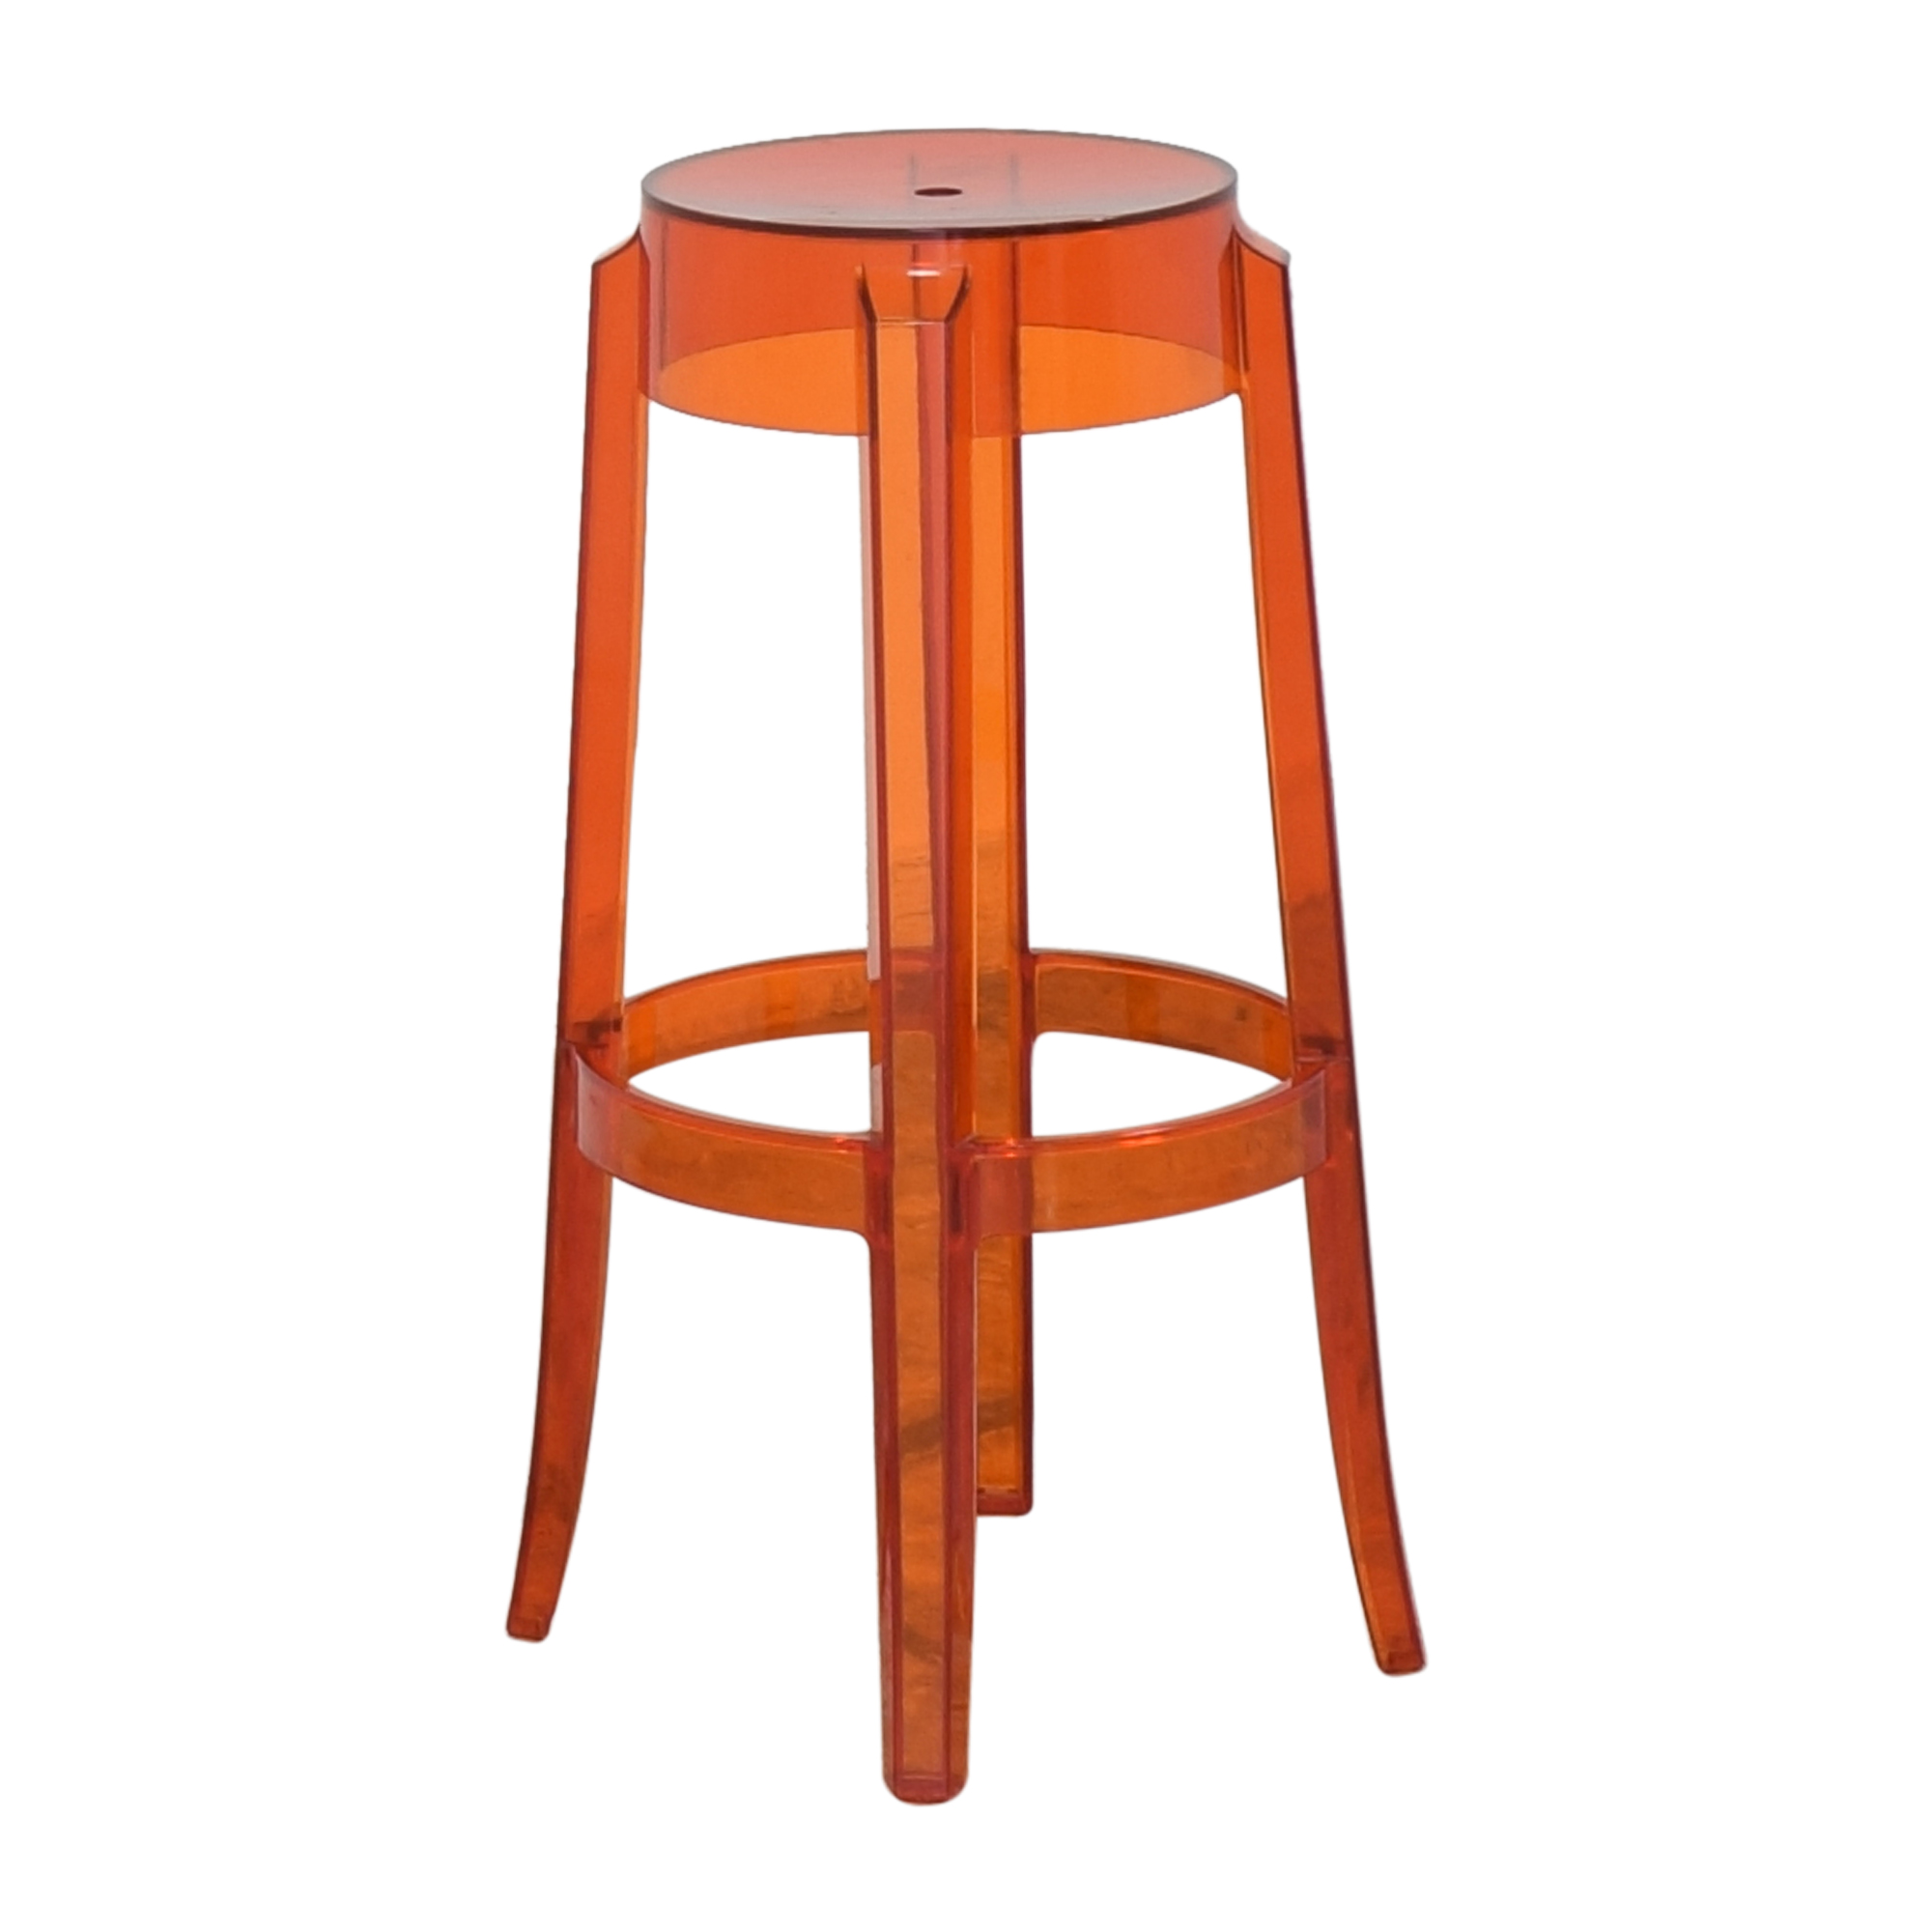 Kartell Kartell Charles Ghost Stool by Phillipe Starck Chairs